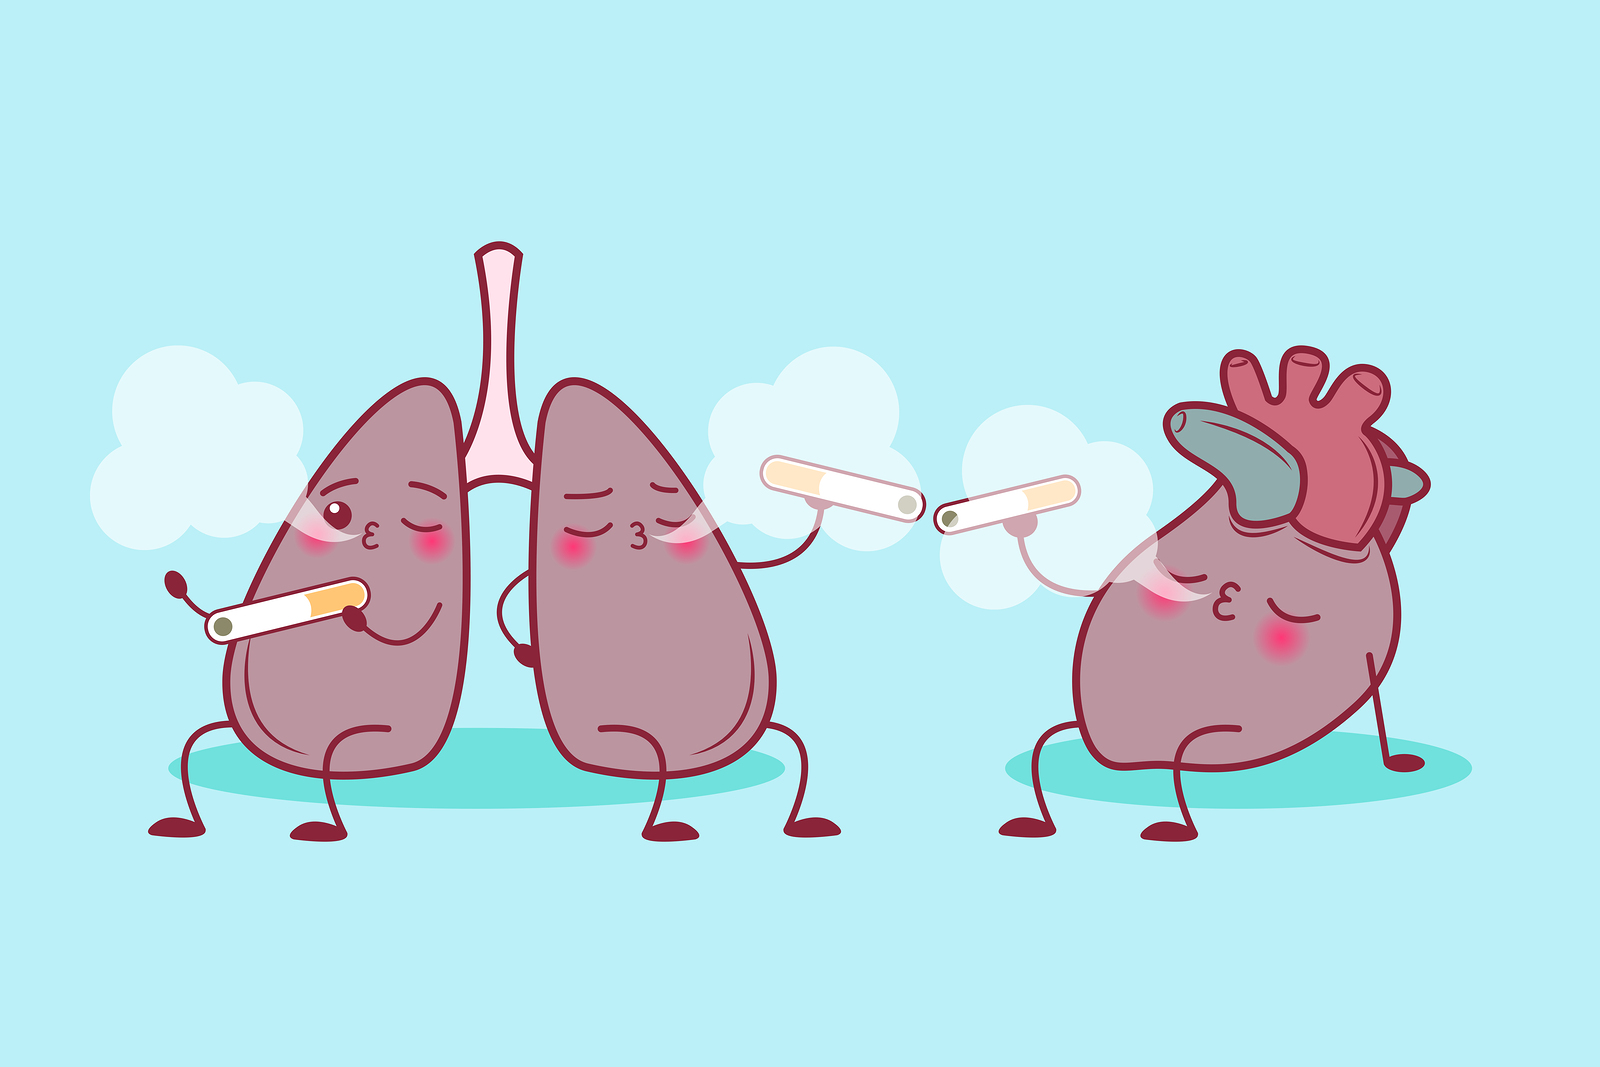 Cute Cartoon Lung And Heart Enjoy Smoke Gracie Raleigh Self Defense Classes Mma Martial Arts And More